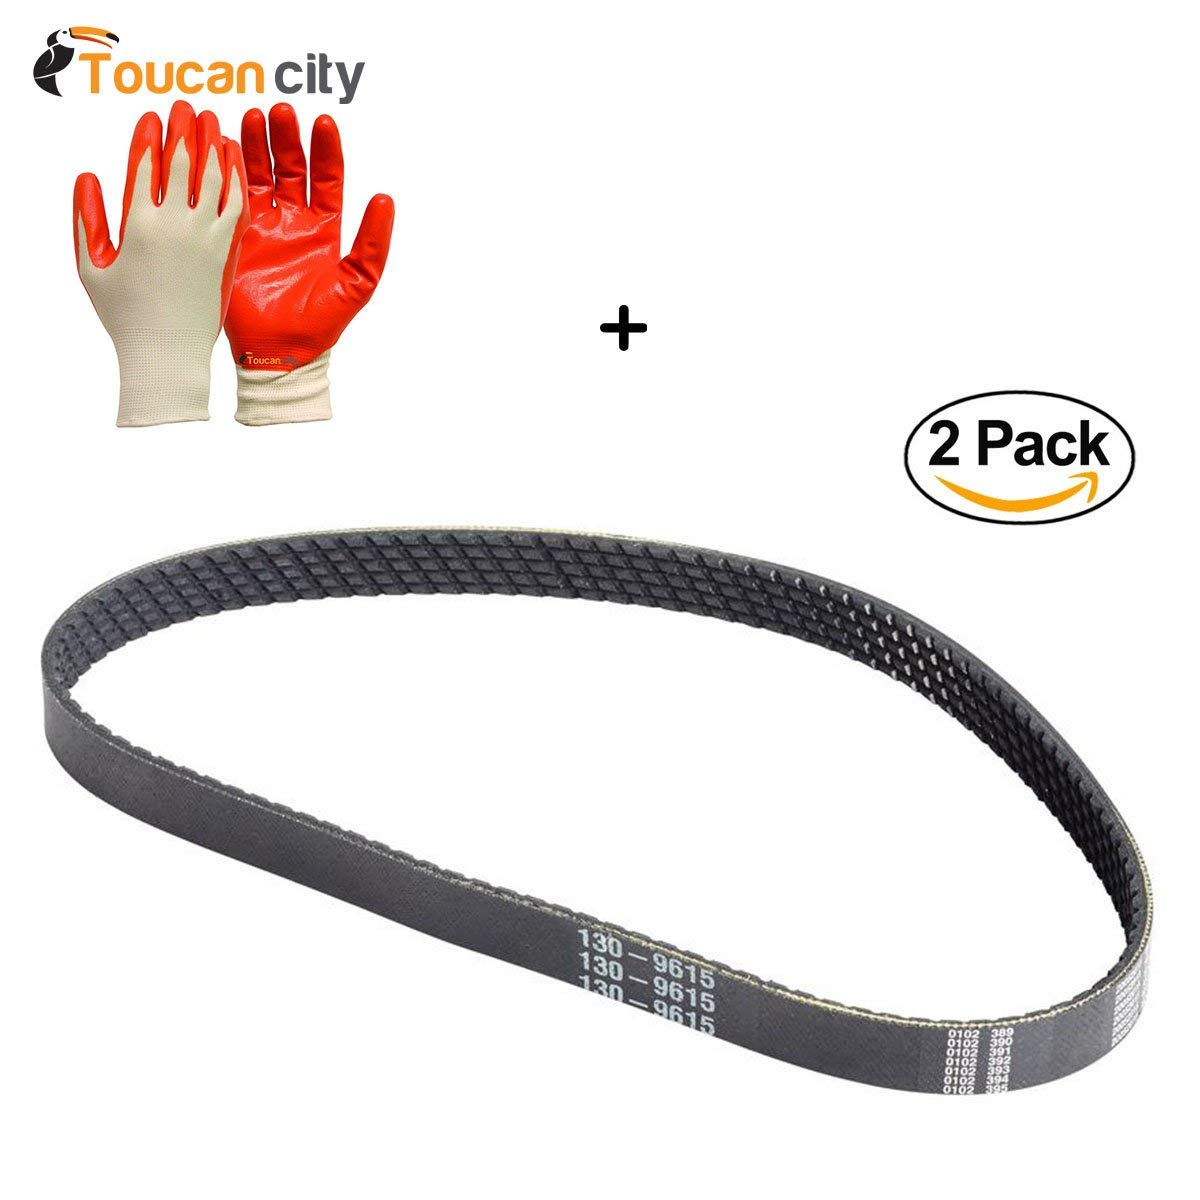 hight resolution of toucan city nitrile dip gloves 5 pack and toro replacement snow blower rotor